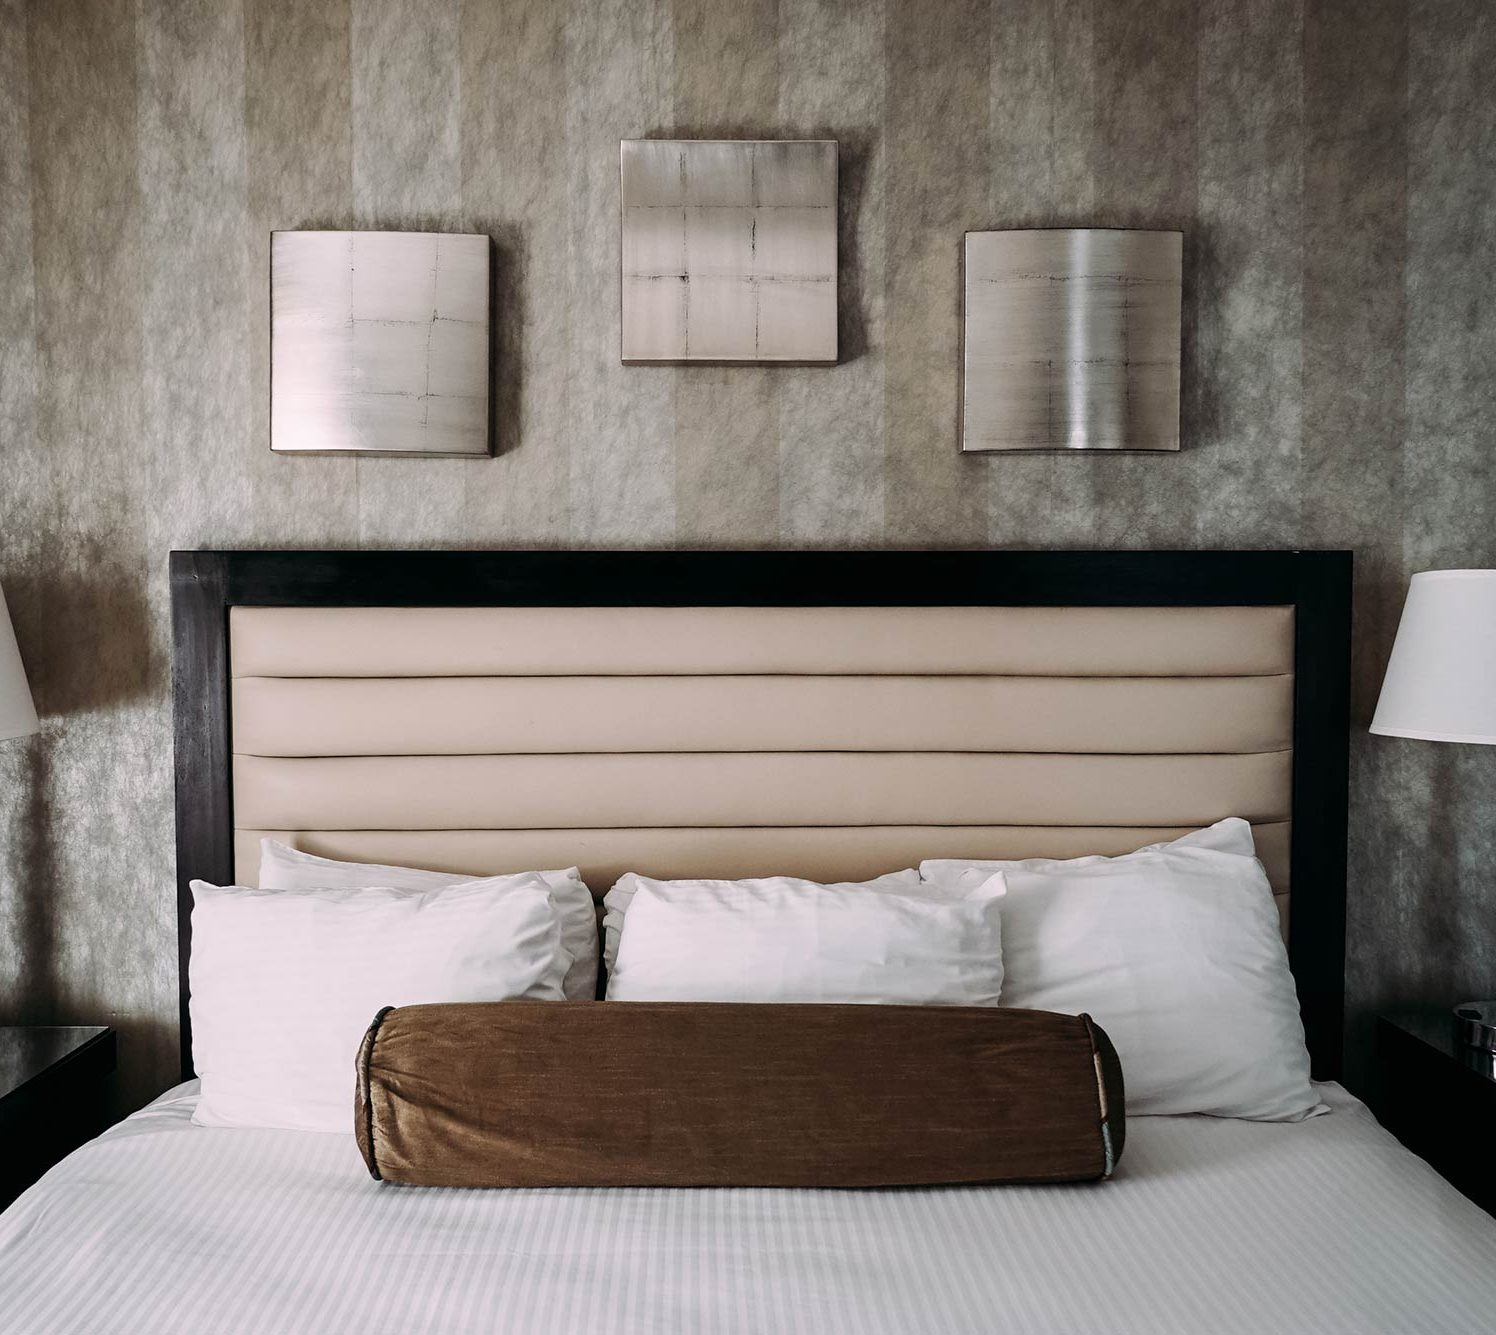 View of a bed headboard